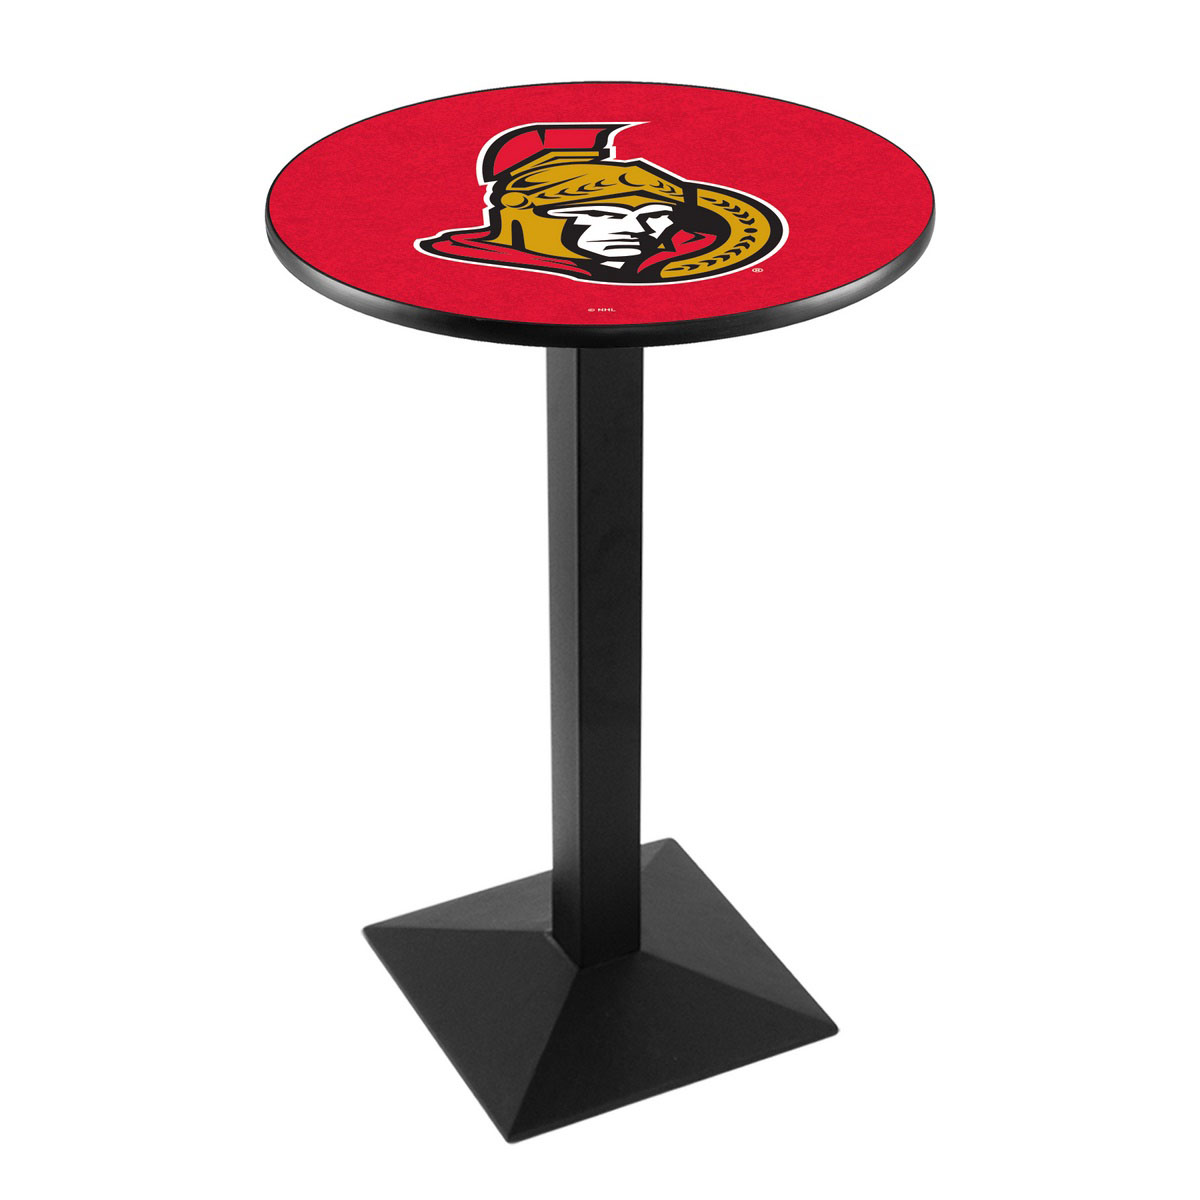 Splendid Ottawa Senators Logo Pub Bar Table Square Stand Product Photo